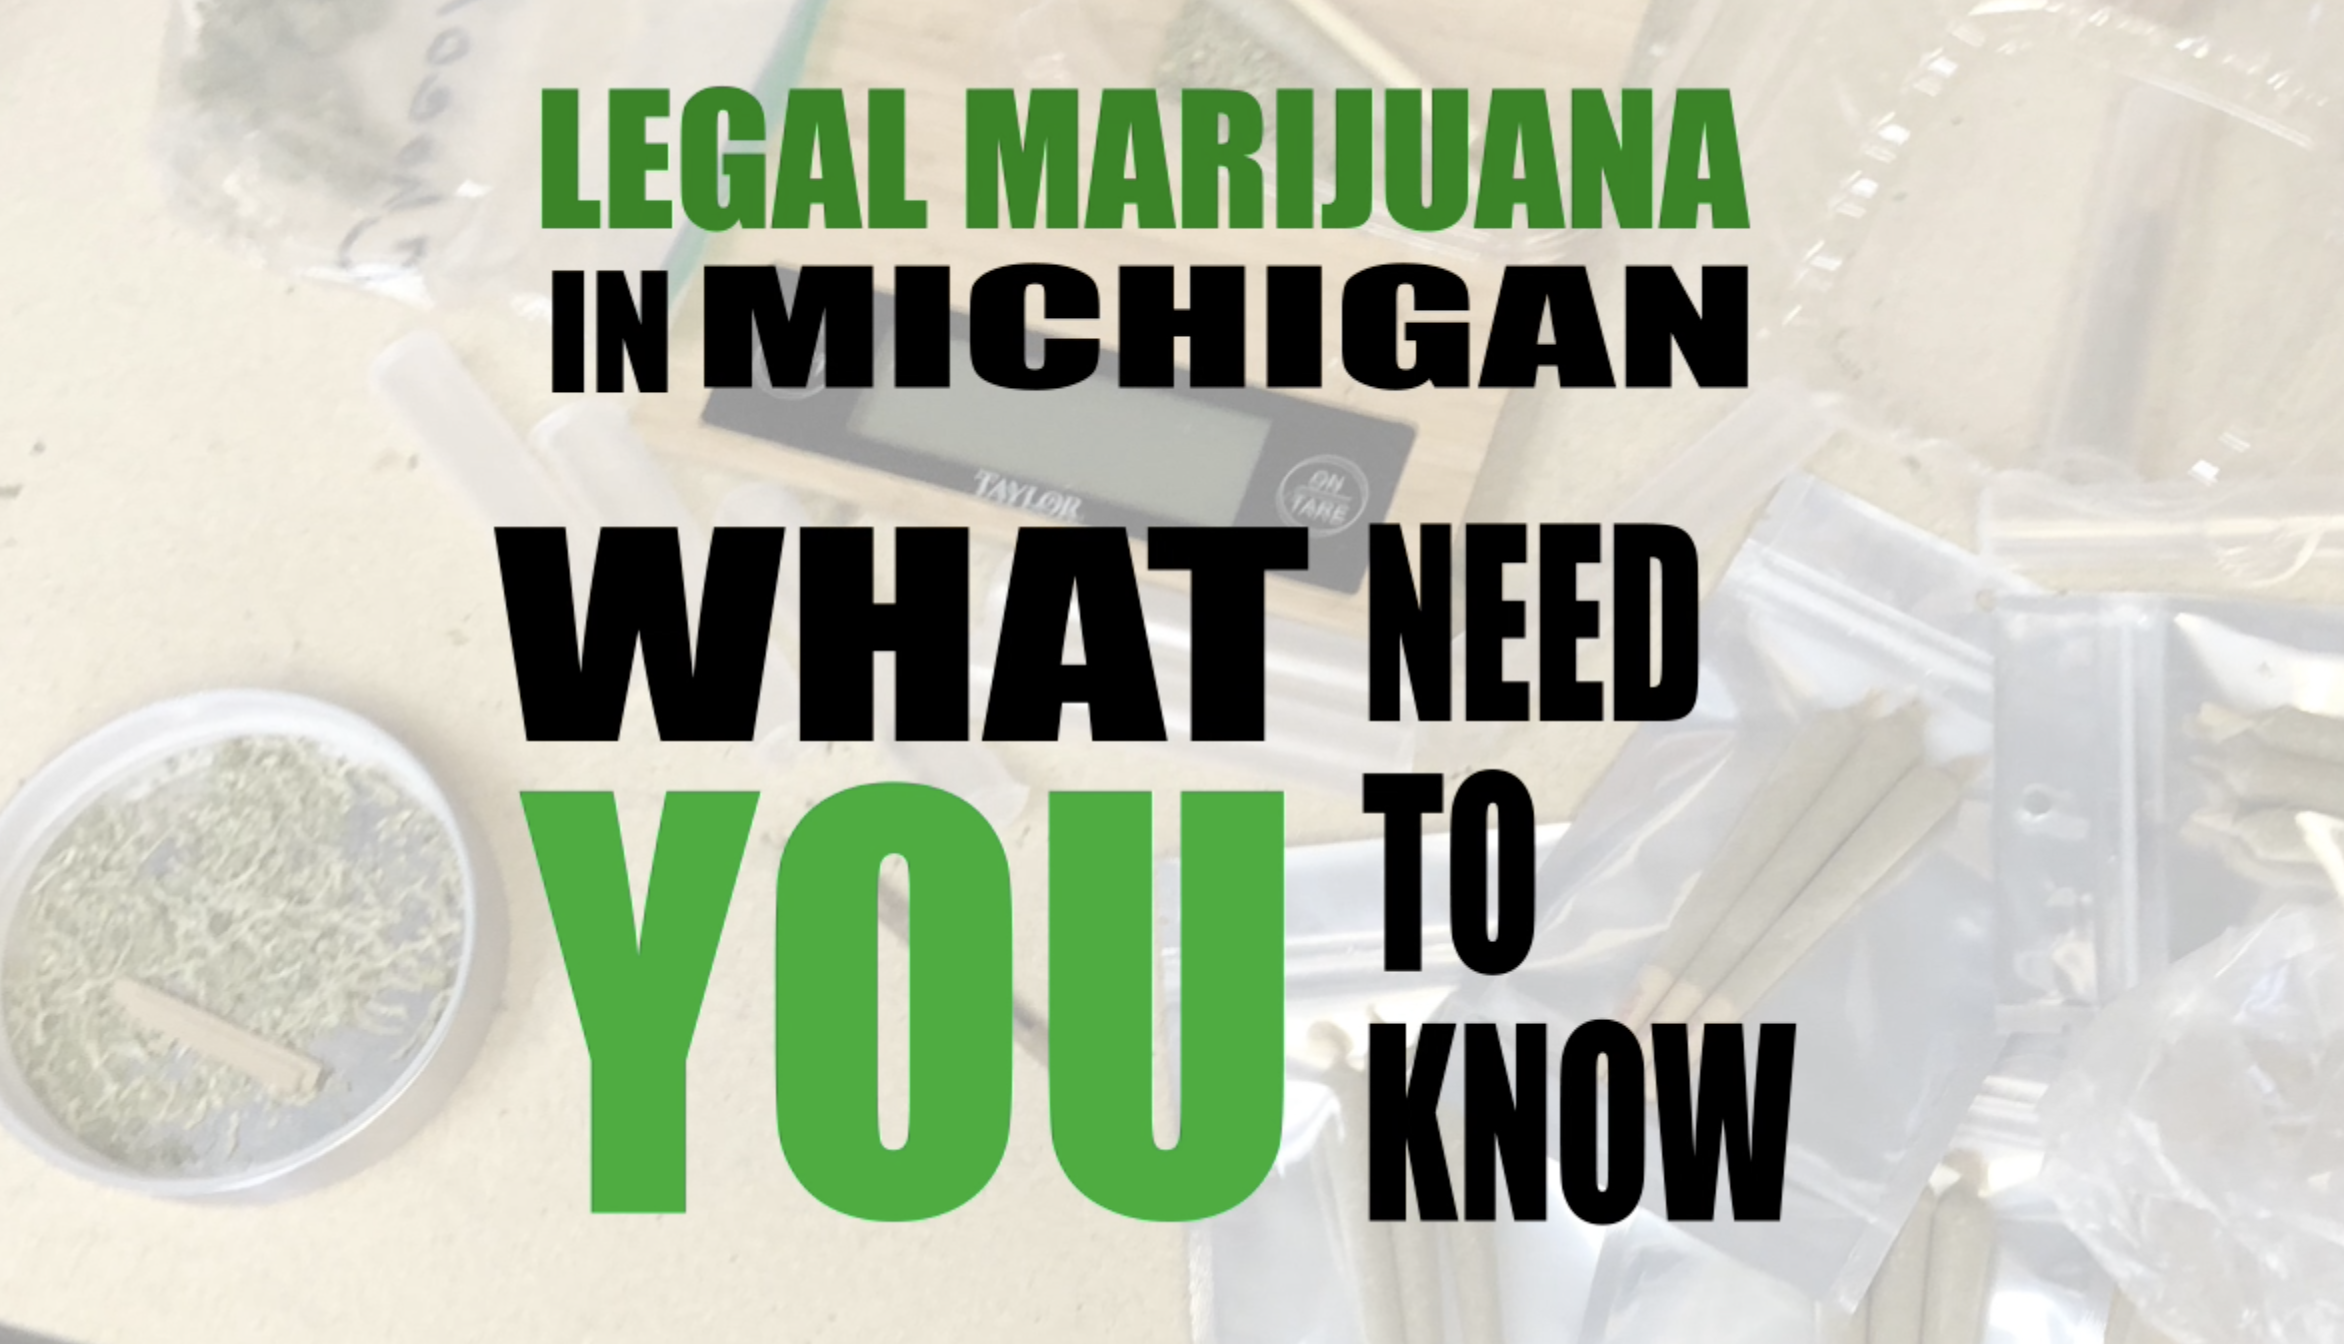 Recreational marijuana in Michigan: What you need to know